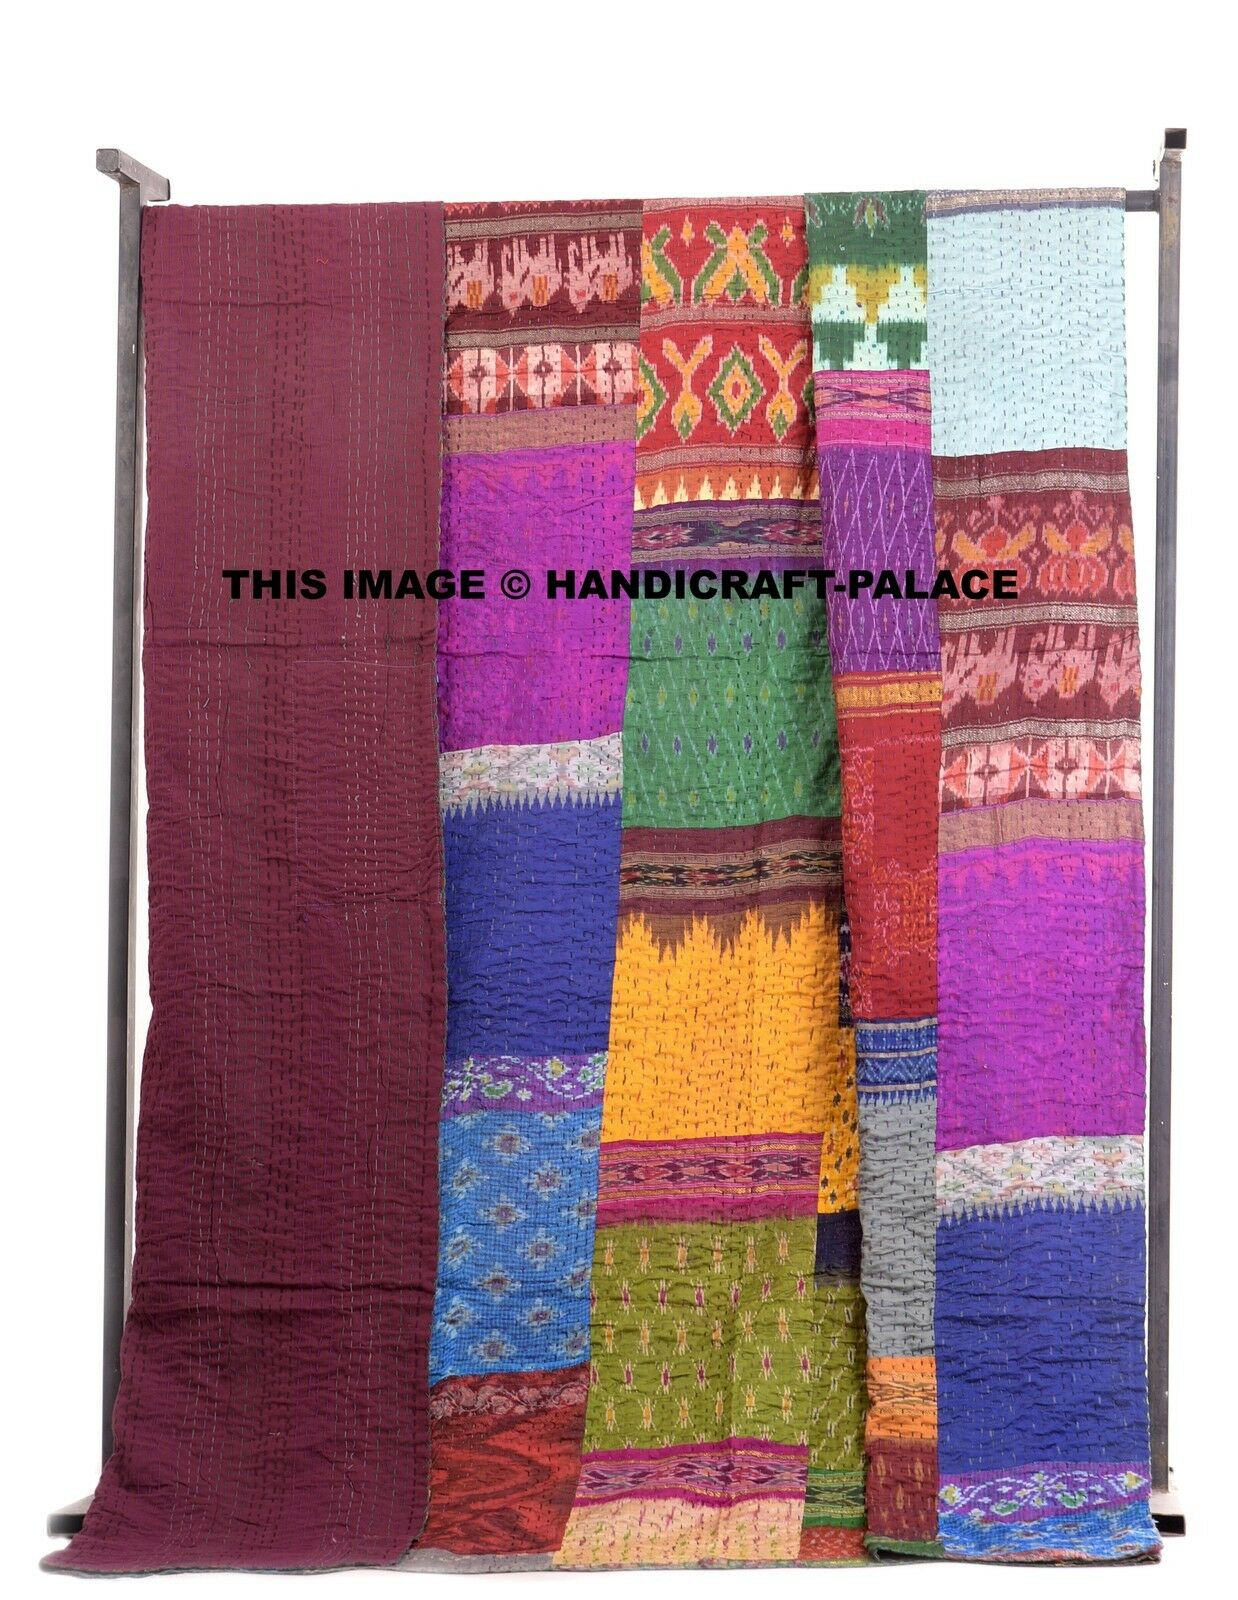 Hand Stitched Indian Silk Patch Queen Tapestry Kantha Quilt Bedspread Blanket